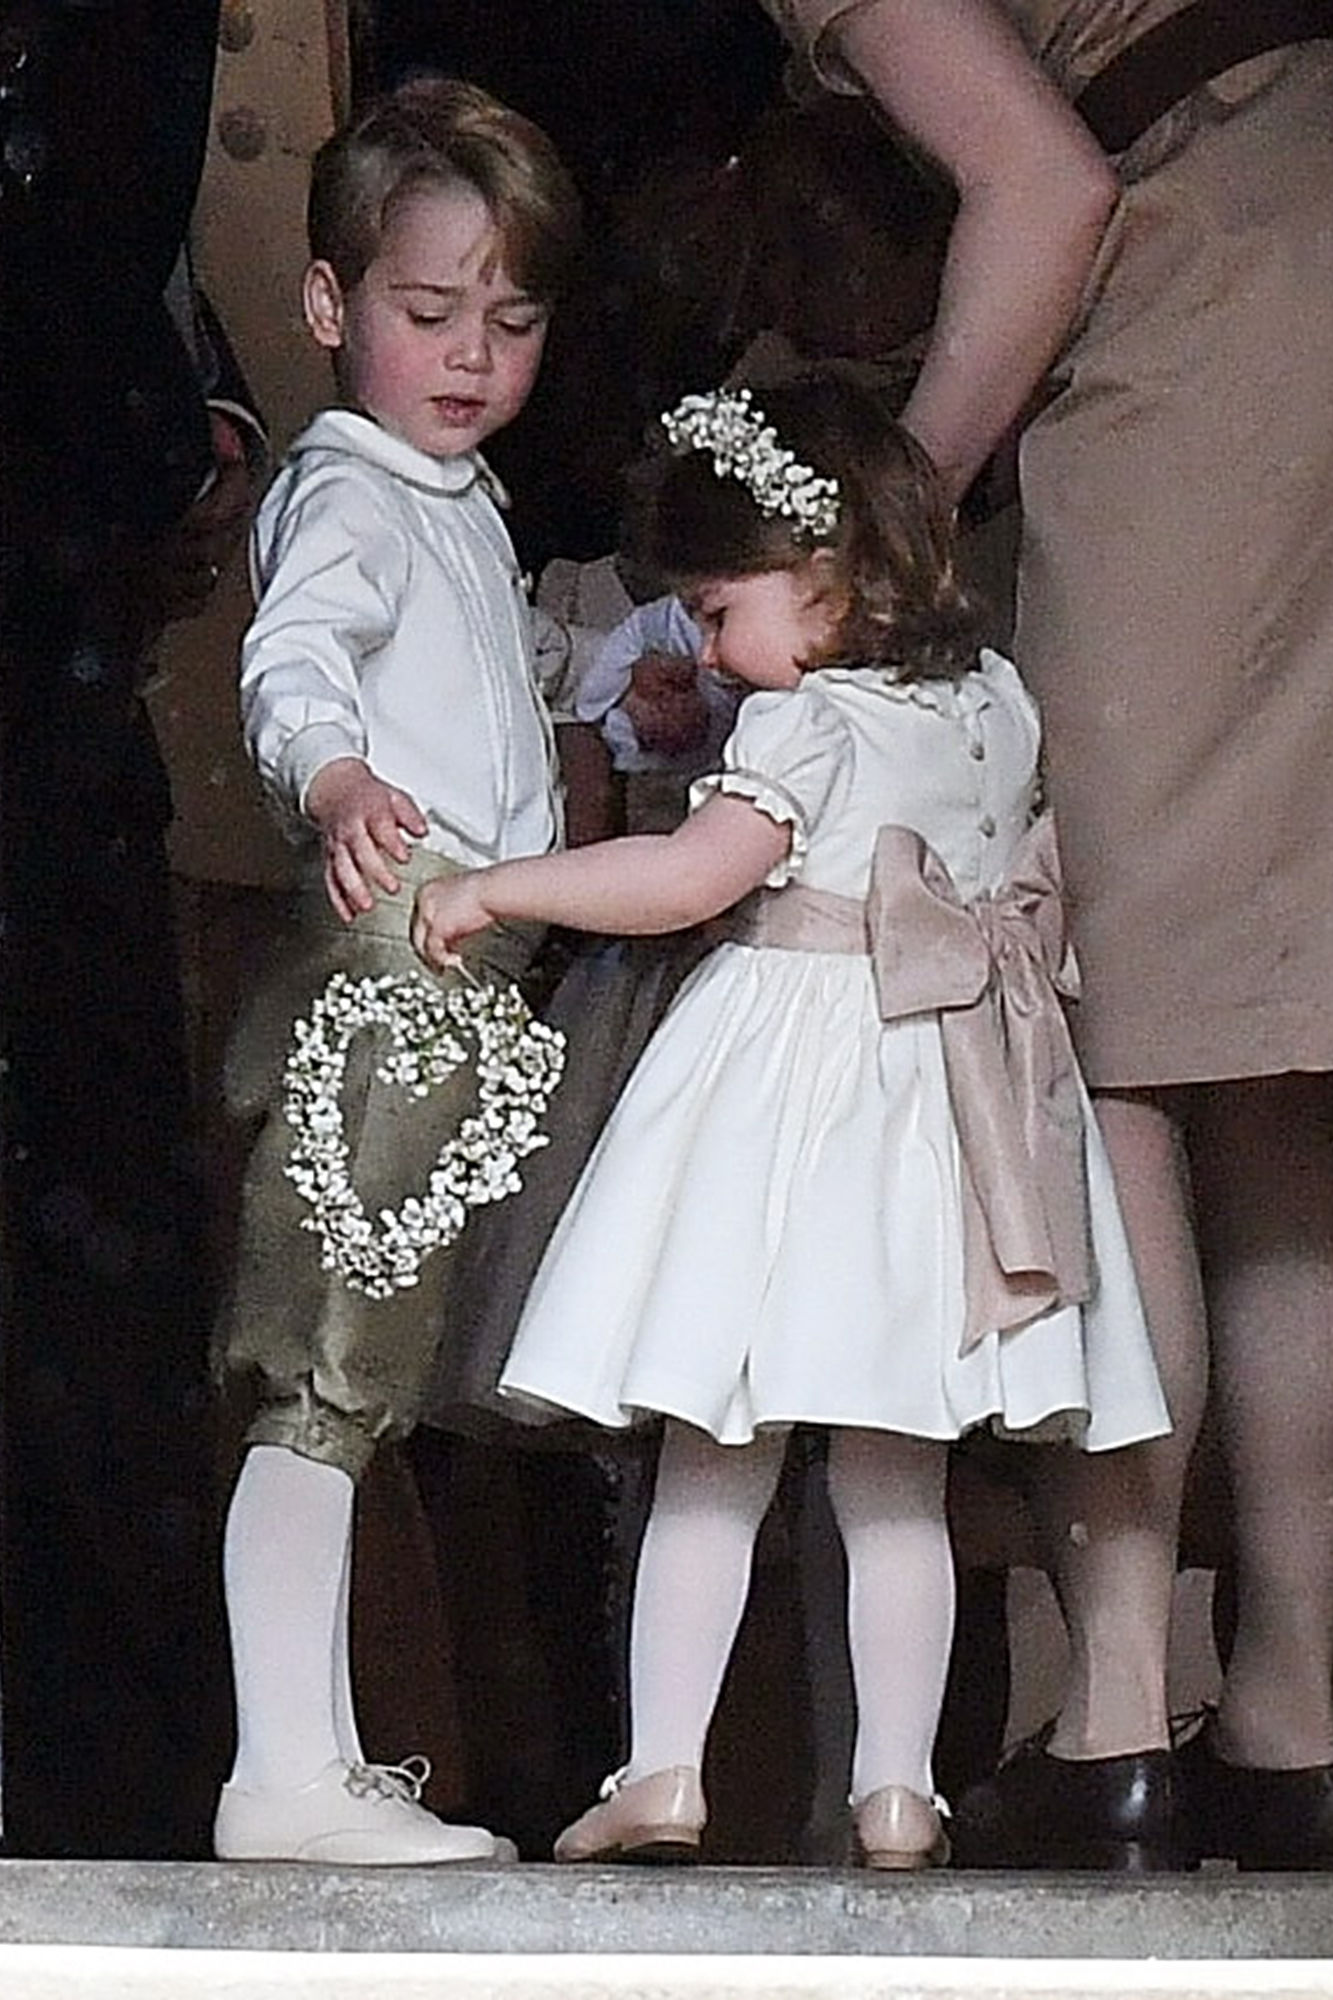 Prince George and Princess Charlotte Were 'Very' Well-Behaved During Pippa Middleton's Wedding